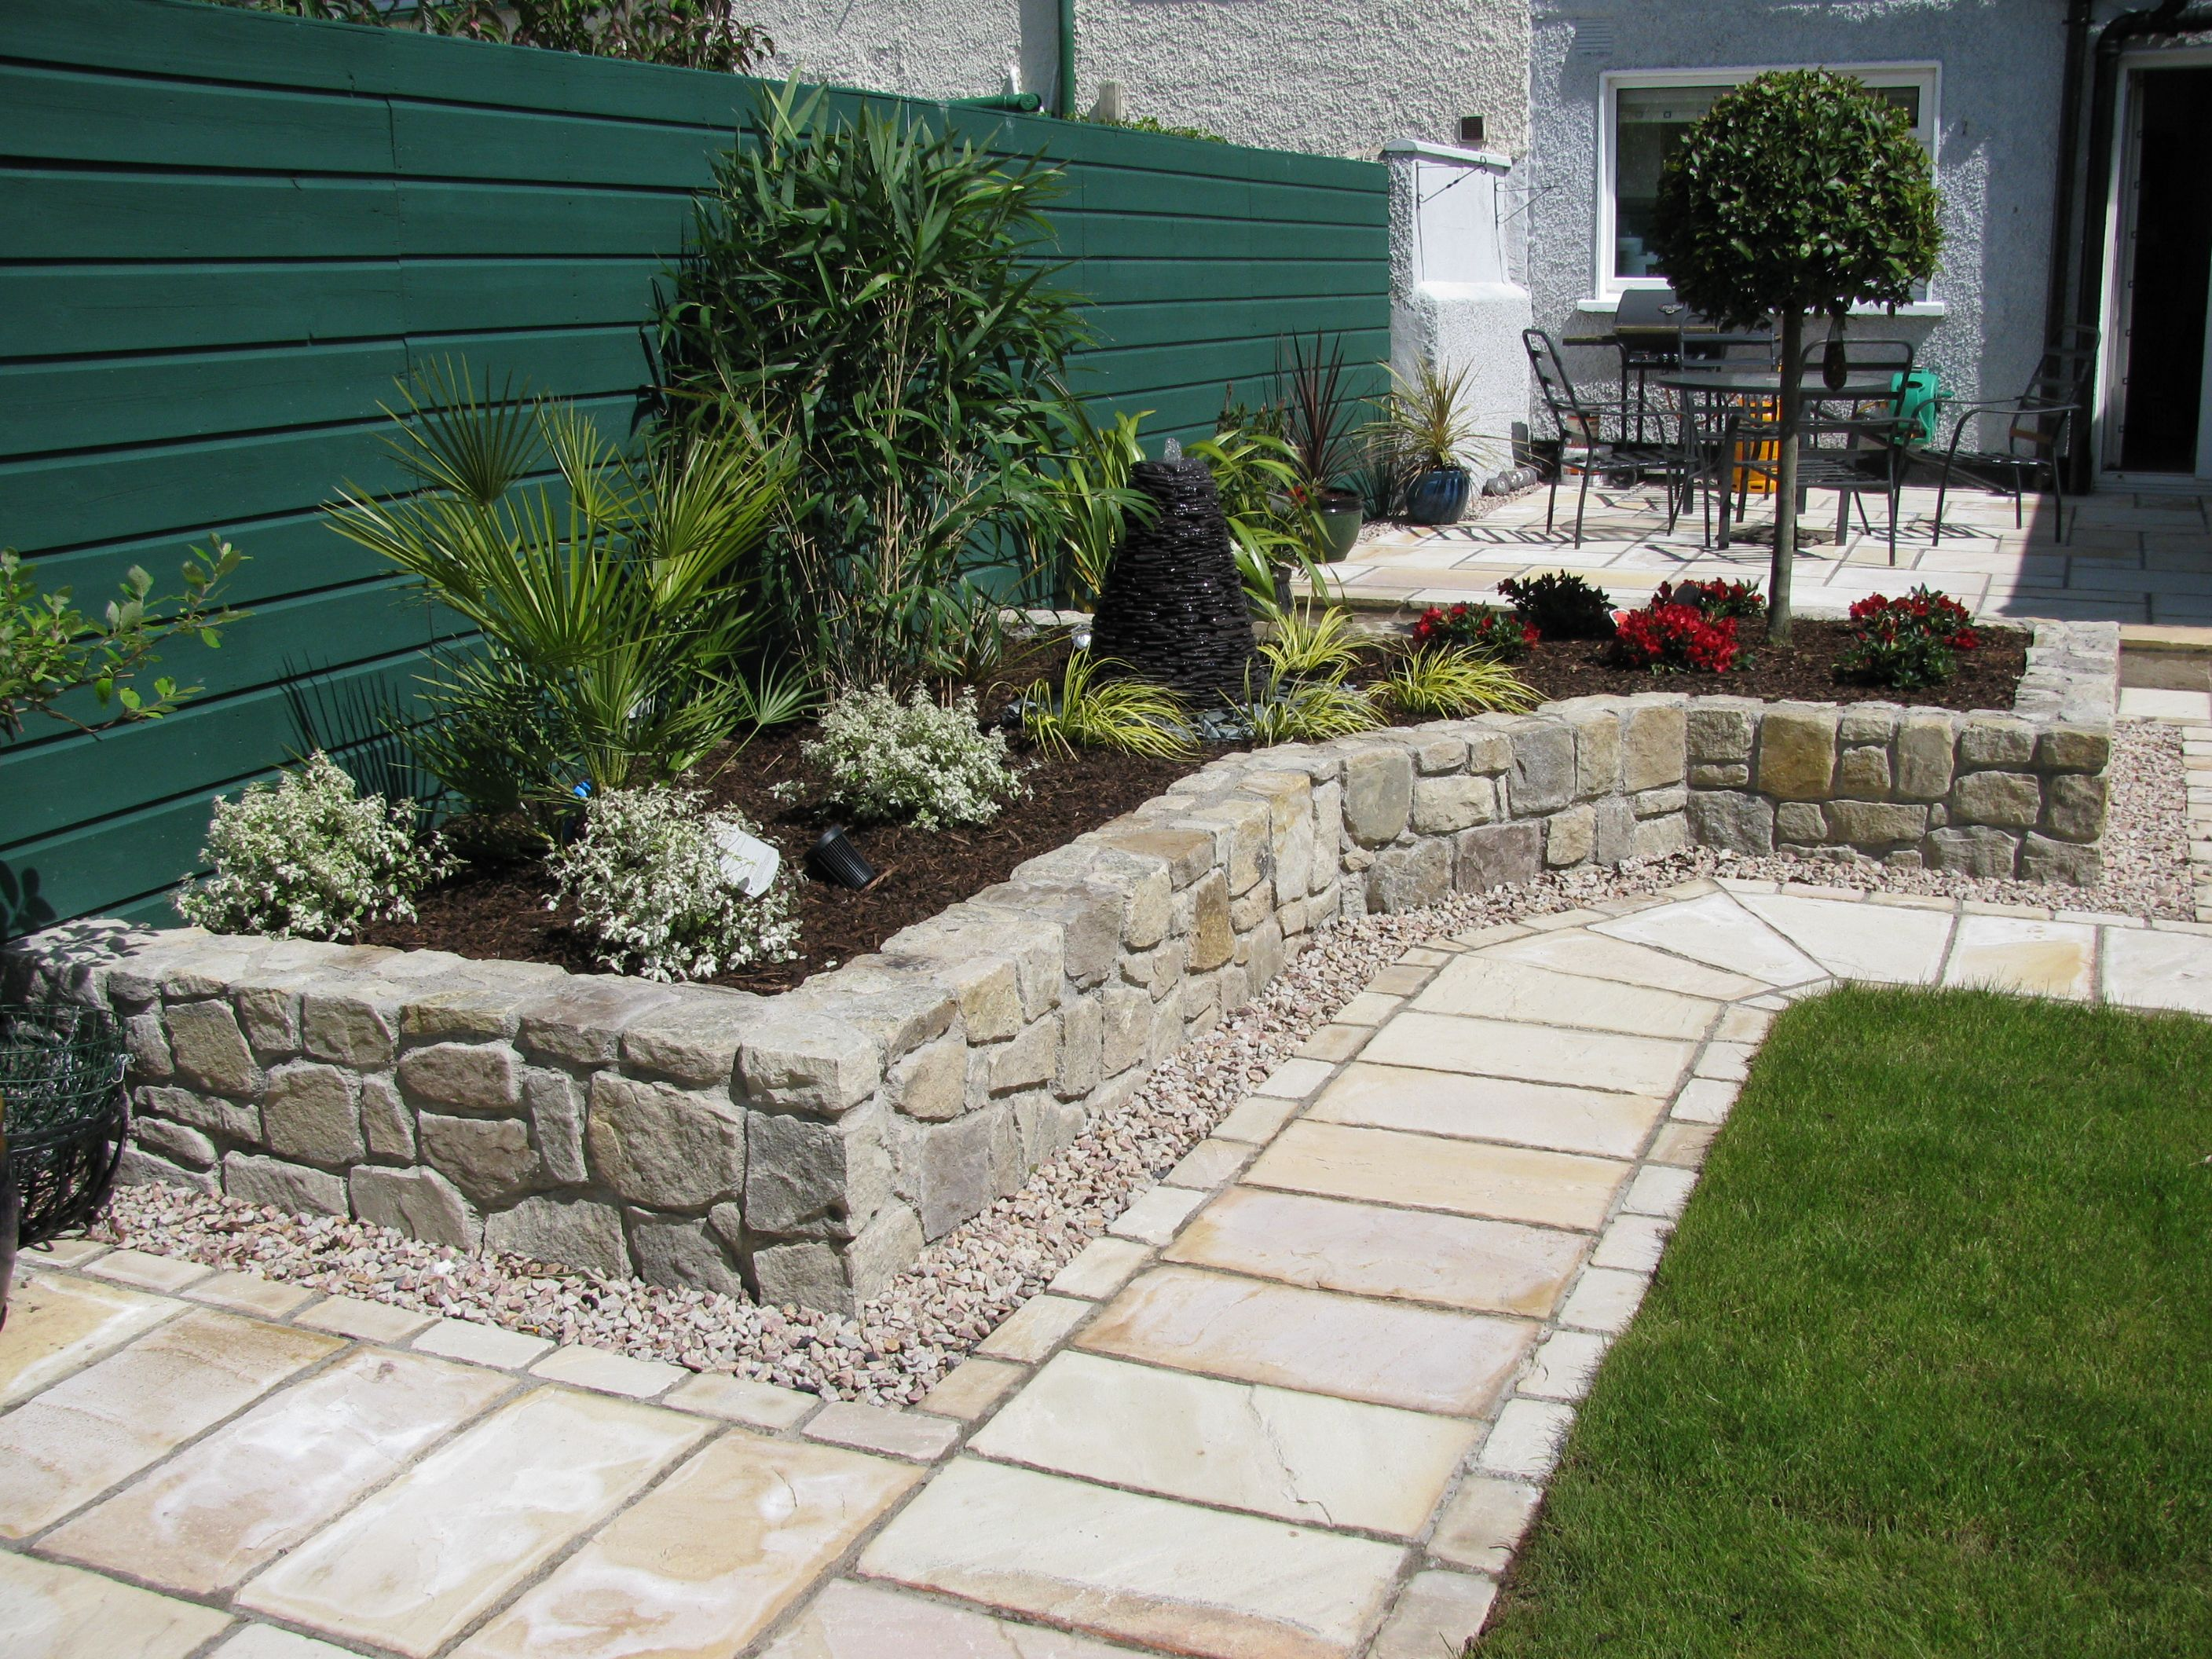 Stone Patio Design Ideas find this pin and more on stone patio ideas by wwwdreamyardcom Pictures Of Landscaping Small Yards Landscaping Design Small Yard Stone Patio Design Ideas Landscaping